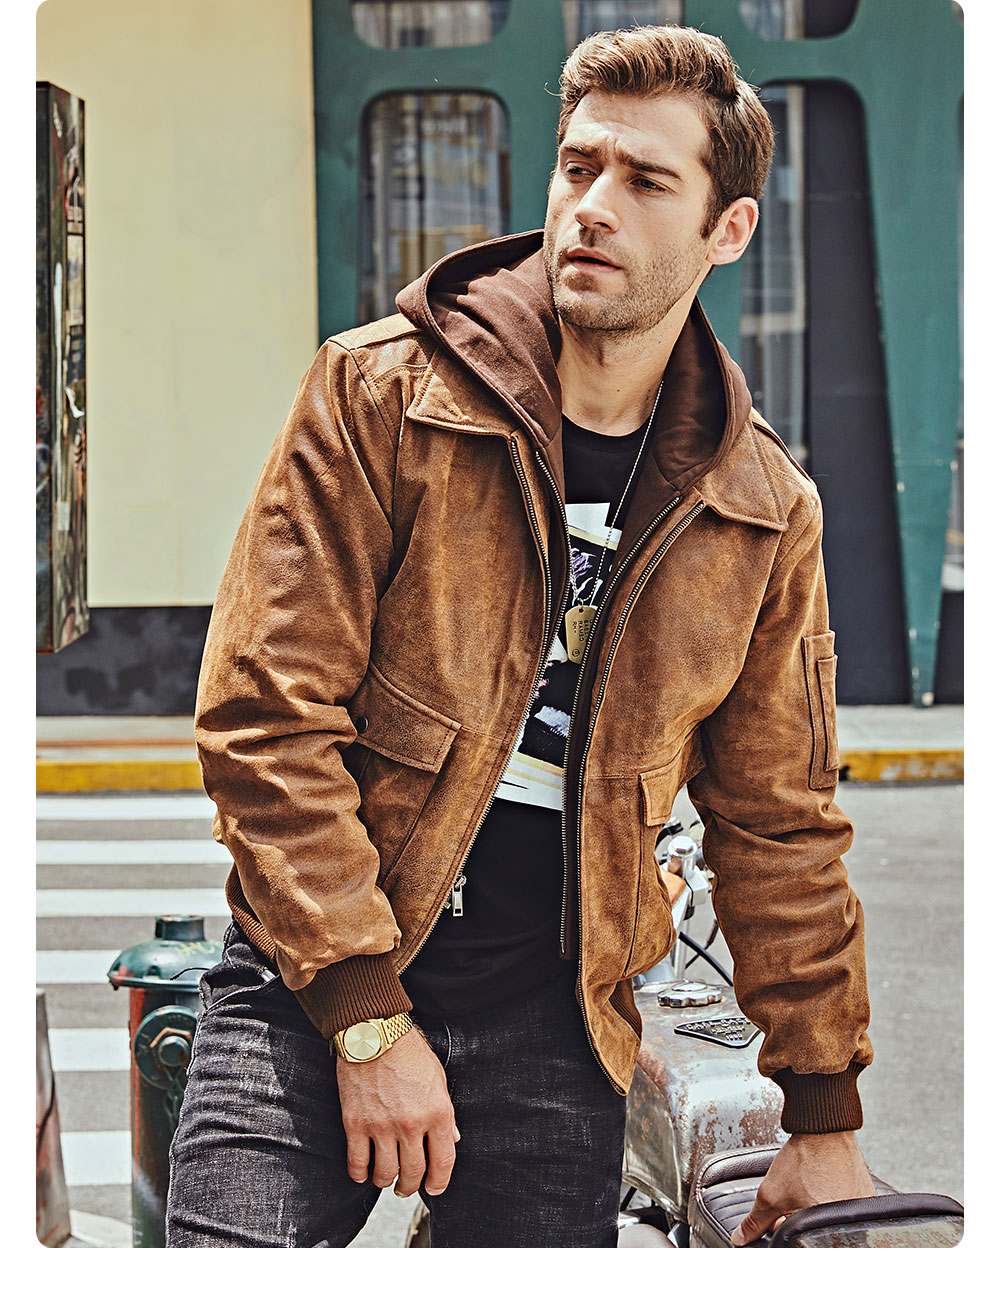 H9e34d95b82444006a5d6410e23135123b FLAVOR New Men's Genuine Leather Bomber Jackets Removable Hood Men Air Forca Aviator winter coat Men Warm Real Leather Jacket